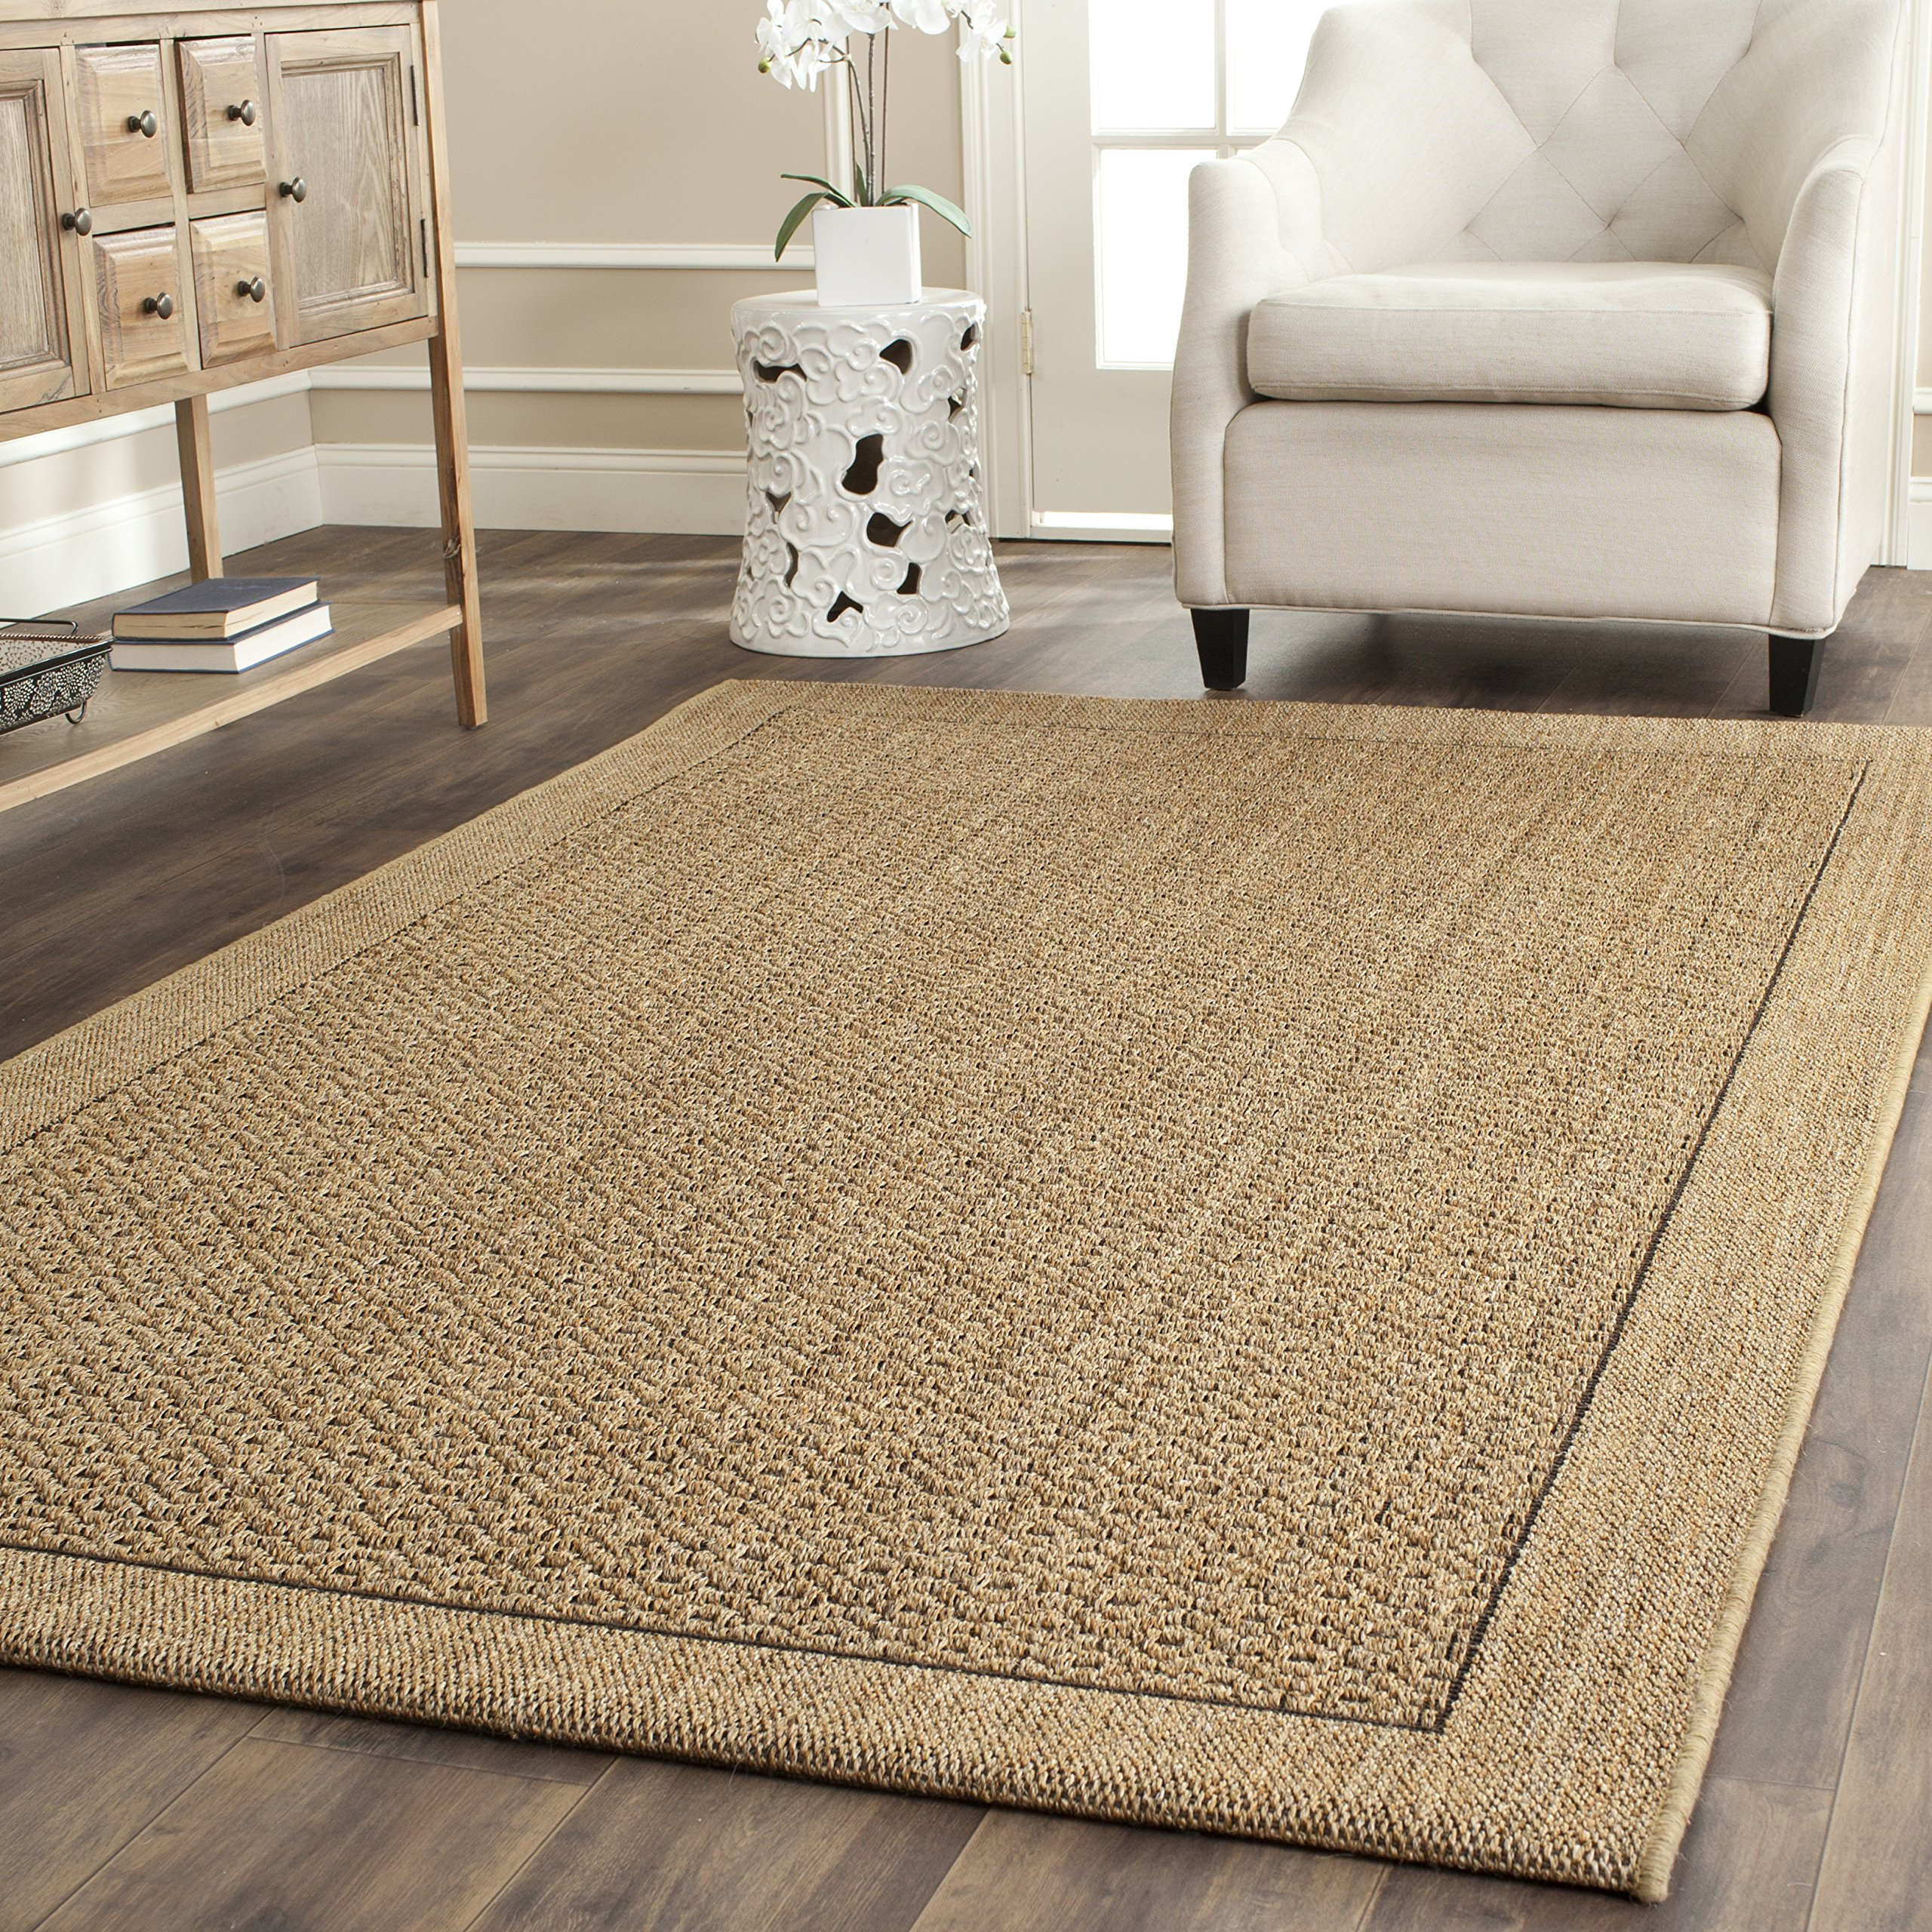 Safavieh Palm Beach Collection PAB355A Natural Sisal & Jute Area Rug (4' x 6') by Safavieh